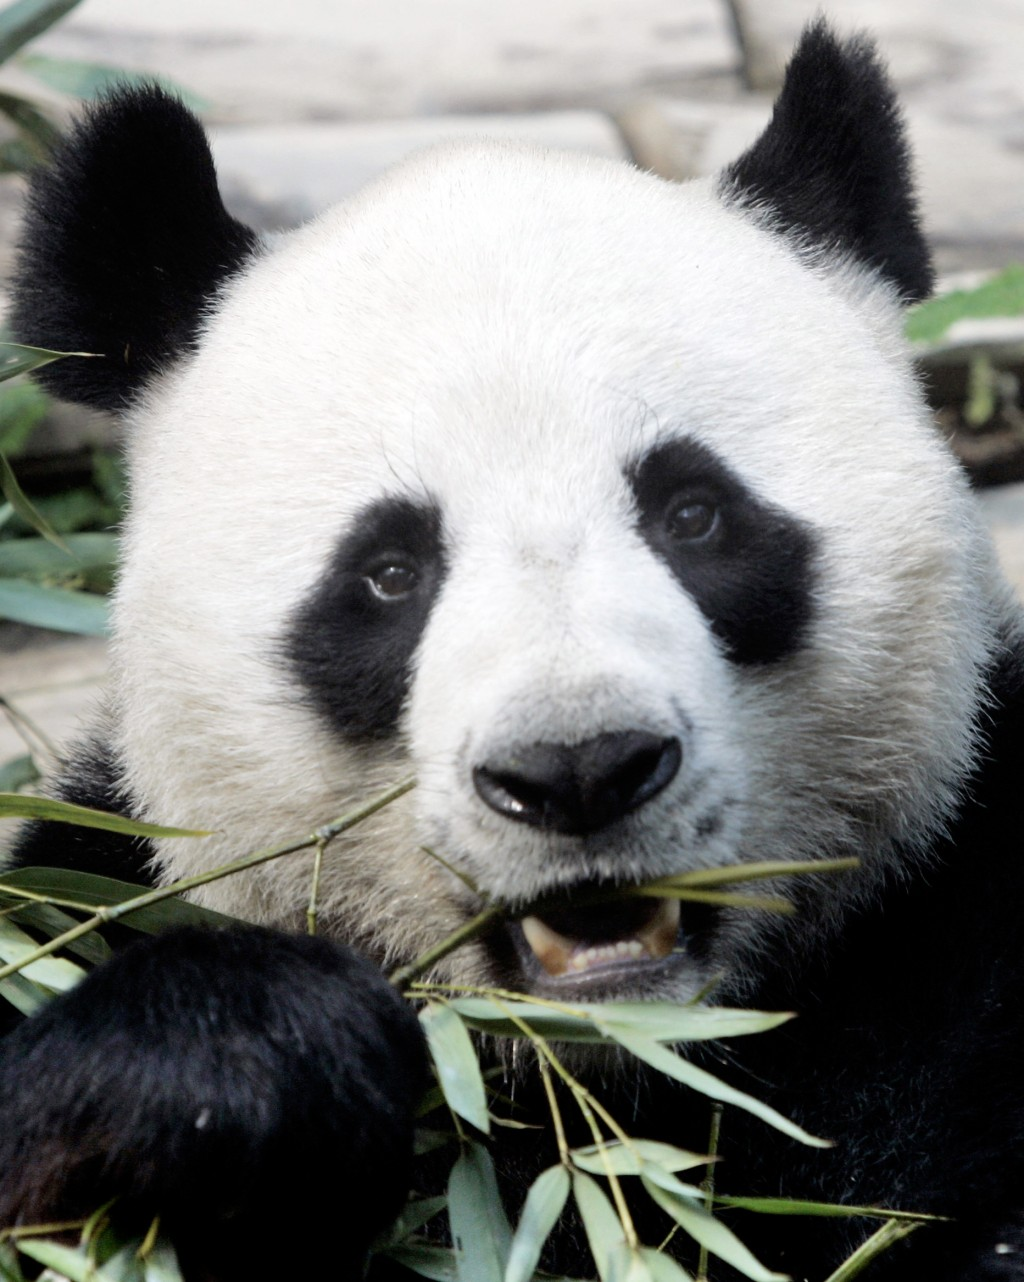 File- In this April 4, 2007. file photo, a male panda named Chuang Chuang chews bamboo leaves inside its cage at the Chiang Mai zoo in Chiang Mai prov...